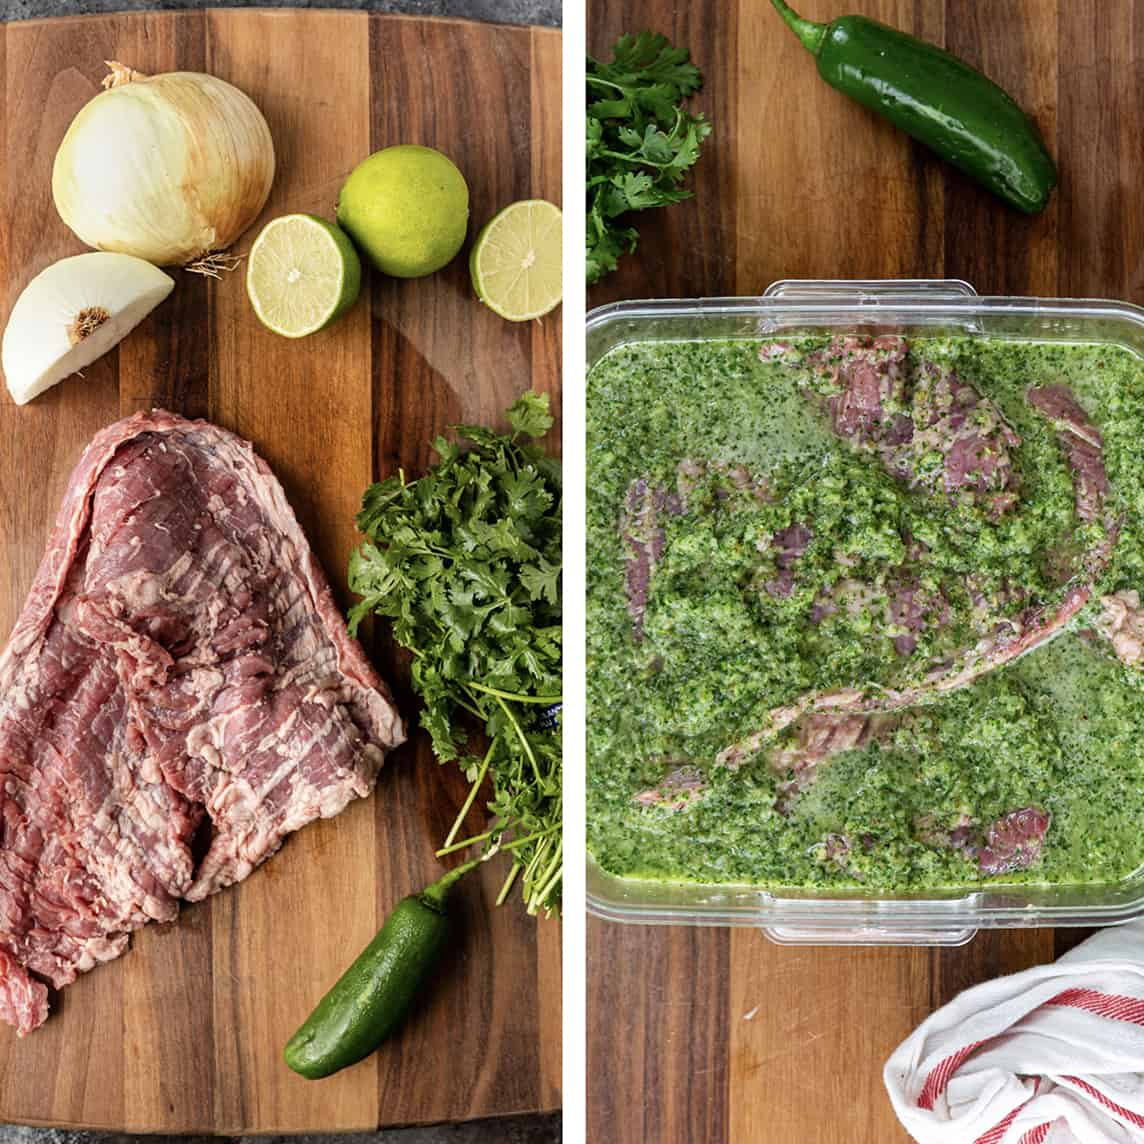 photo collage: on left - raw skirl steak with ingredients to make cilantro lime steak marinade. on right - steak in marinade